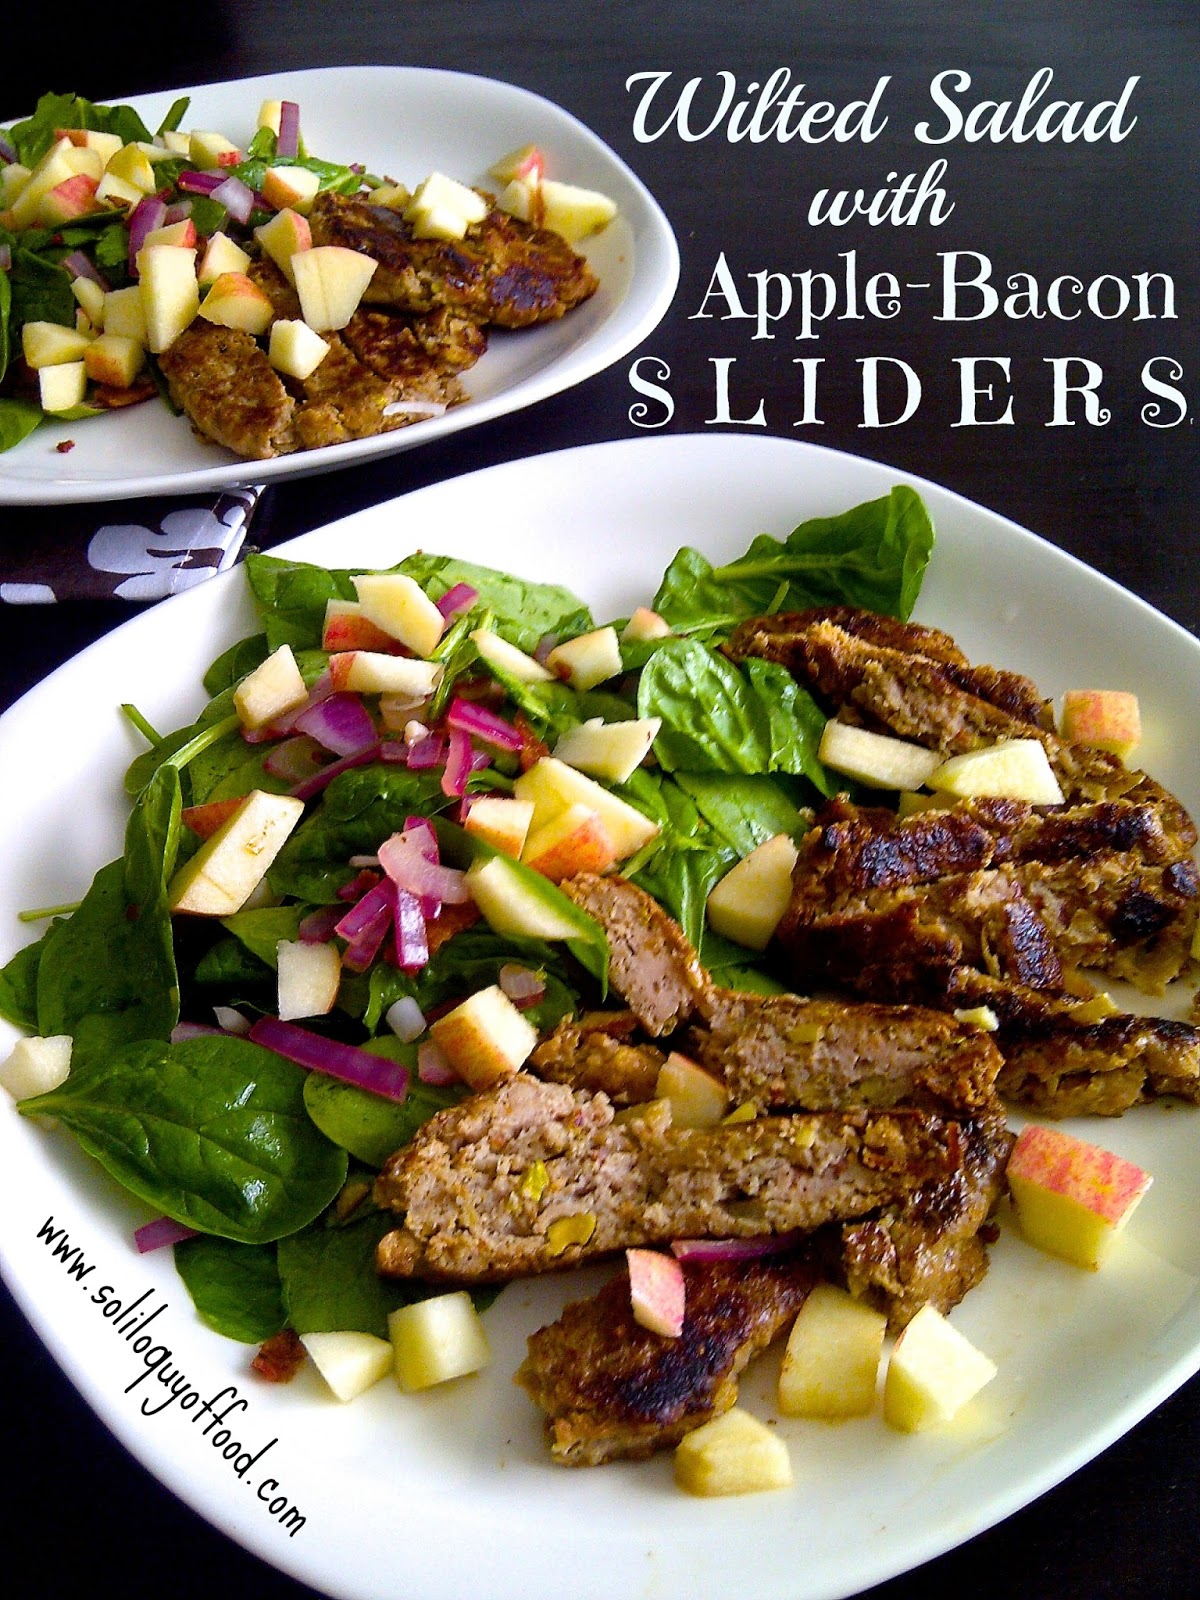 Wilted Salad with Apple Bacon Sliders**check your bacon to ensure it is gluten free**